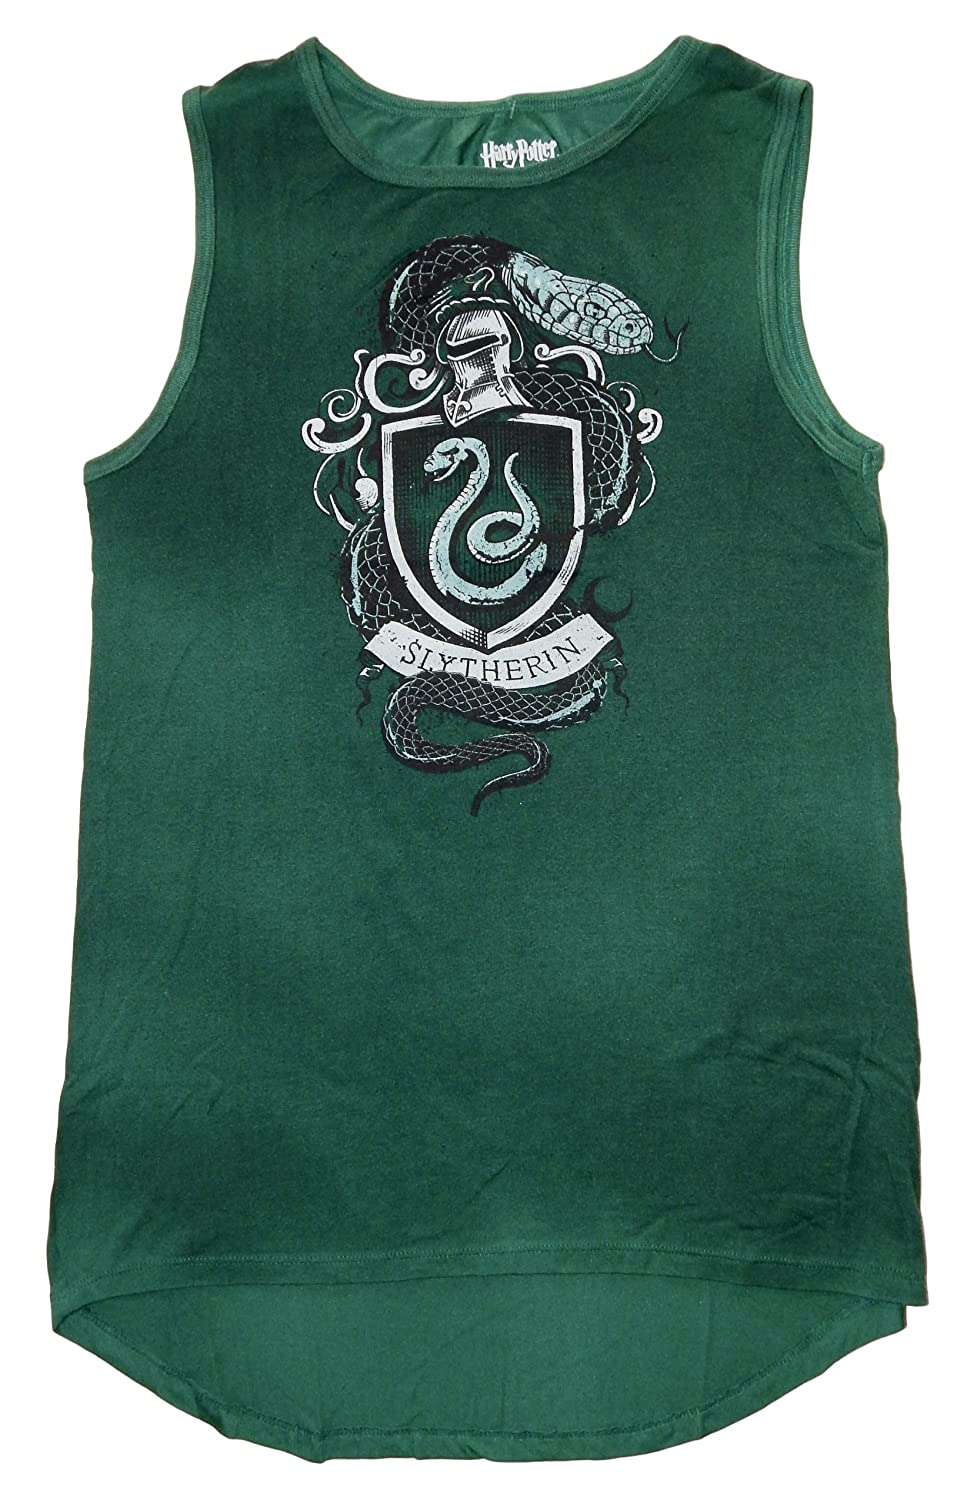 0d5abc17 Harry Potter House Gryffindor Womens Juniors Muscle Tank Top (XL,  Slytherin): Amazon.ca: Clothing & Accessories